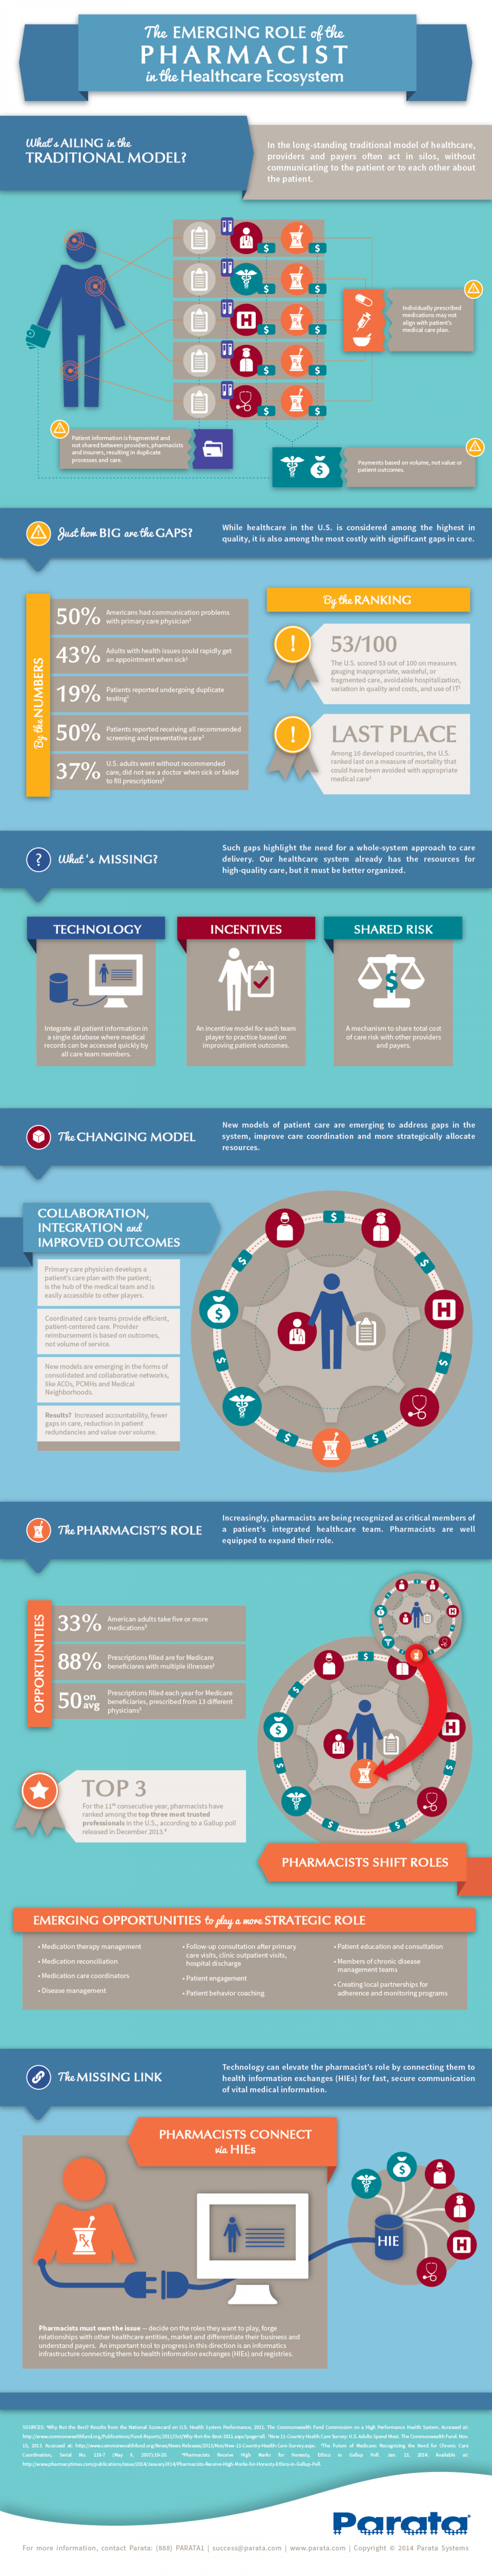 The Emerging Role of the Pharmacist in the Healthcare Ecosystem Infographic